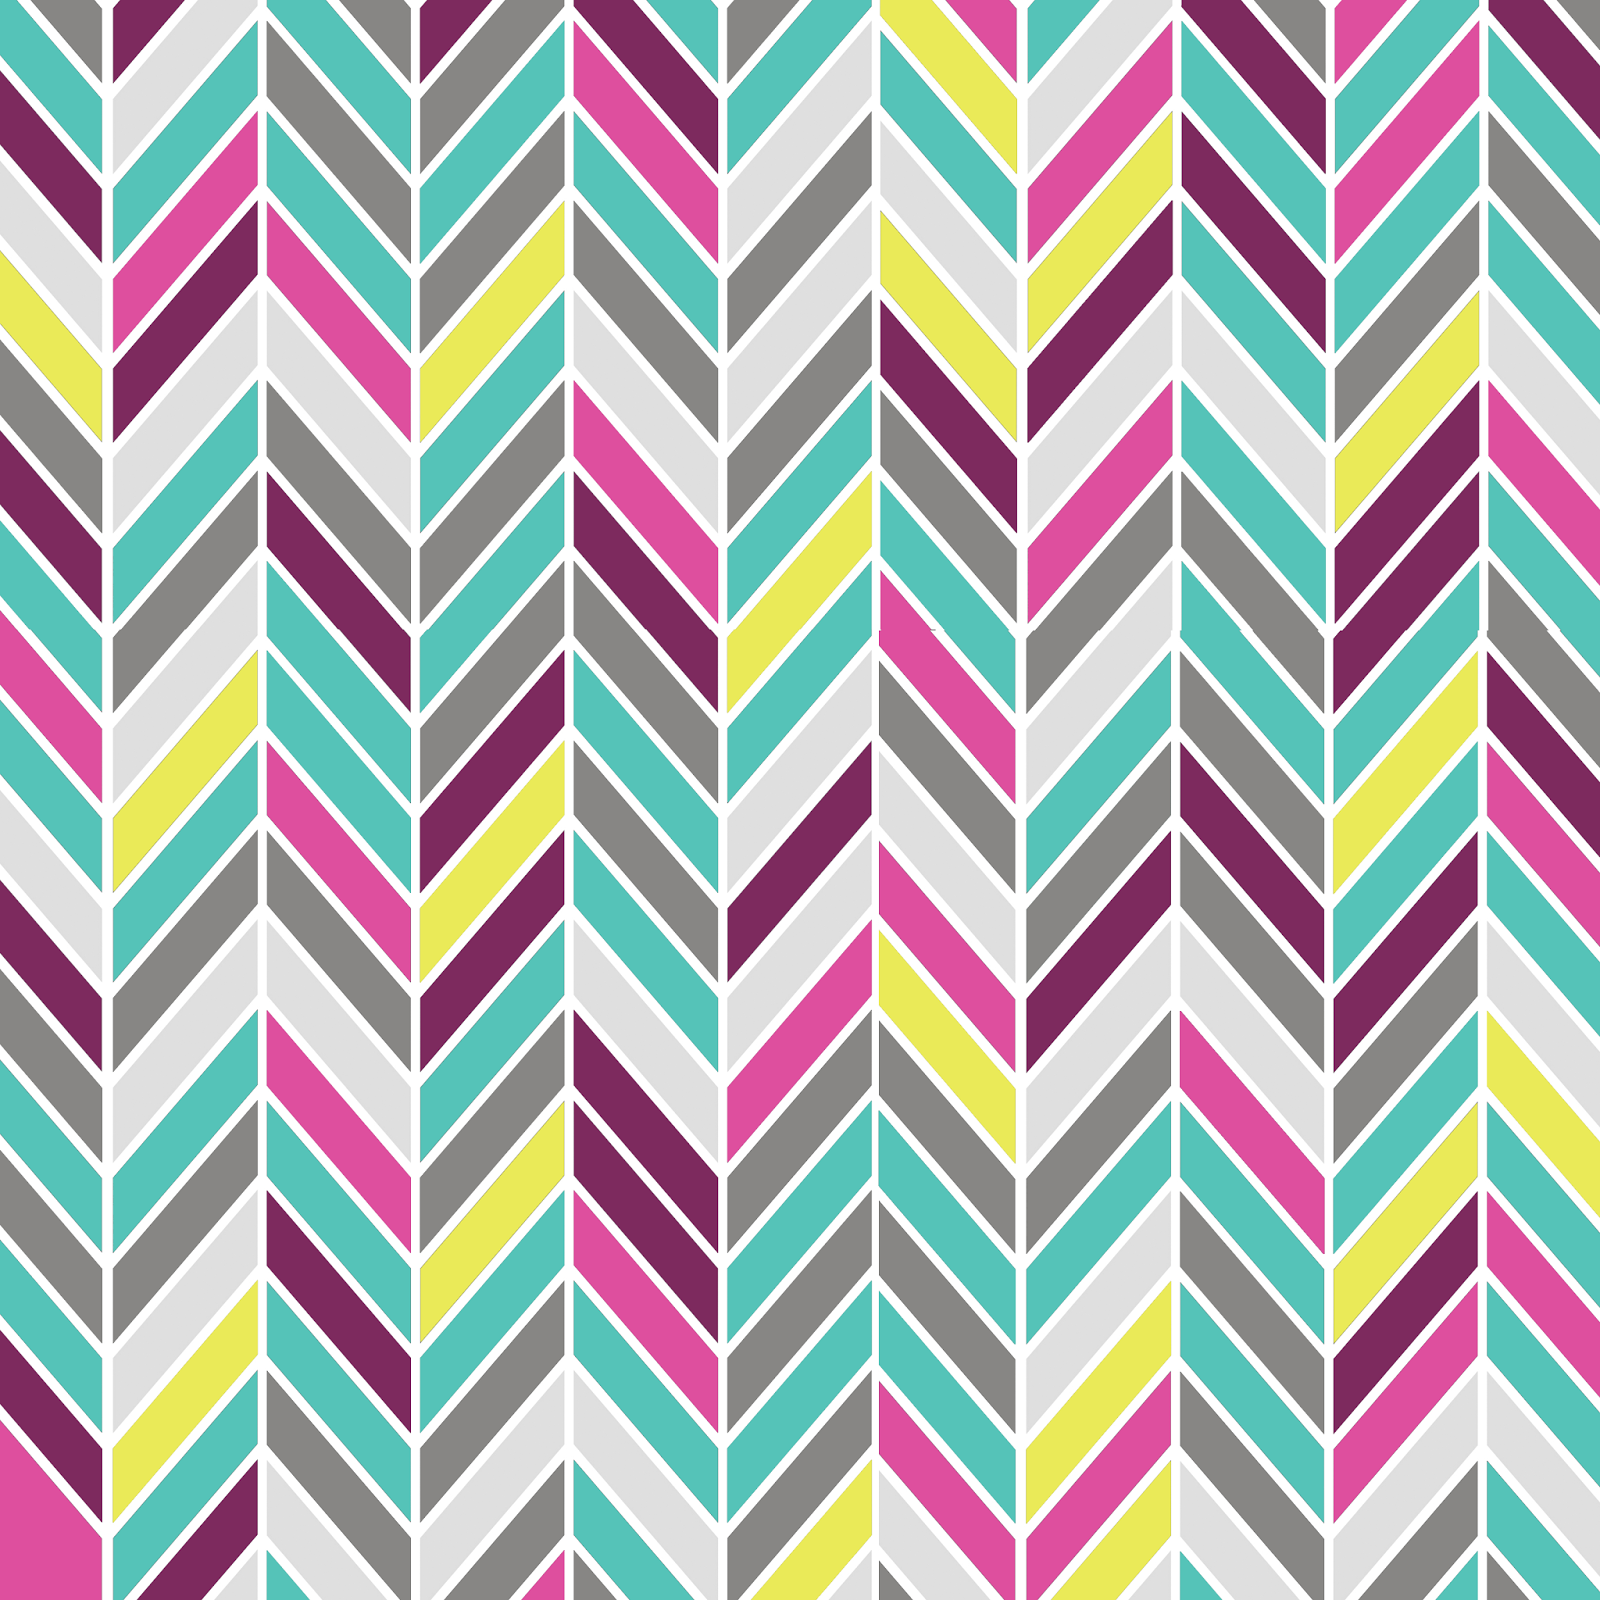 Doodlecraft: FREEBIES WEEK! Free Chevron Herringbone Background Wallpapers!